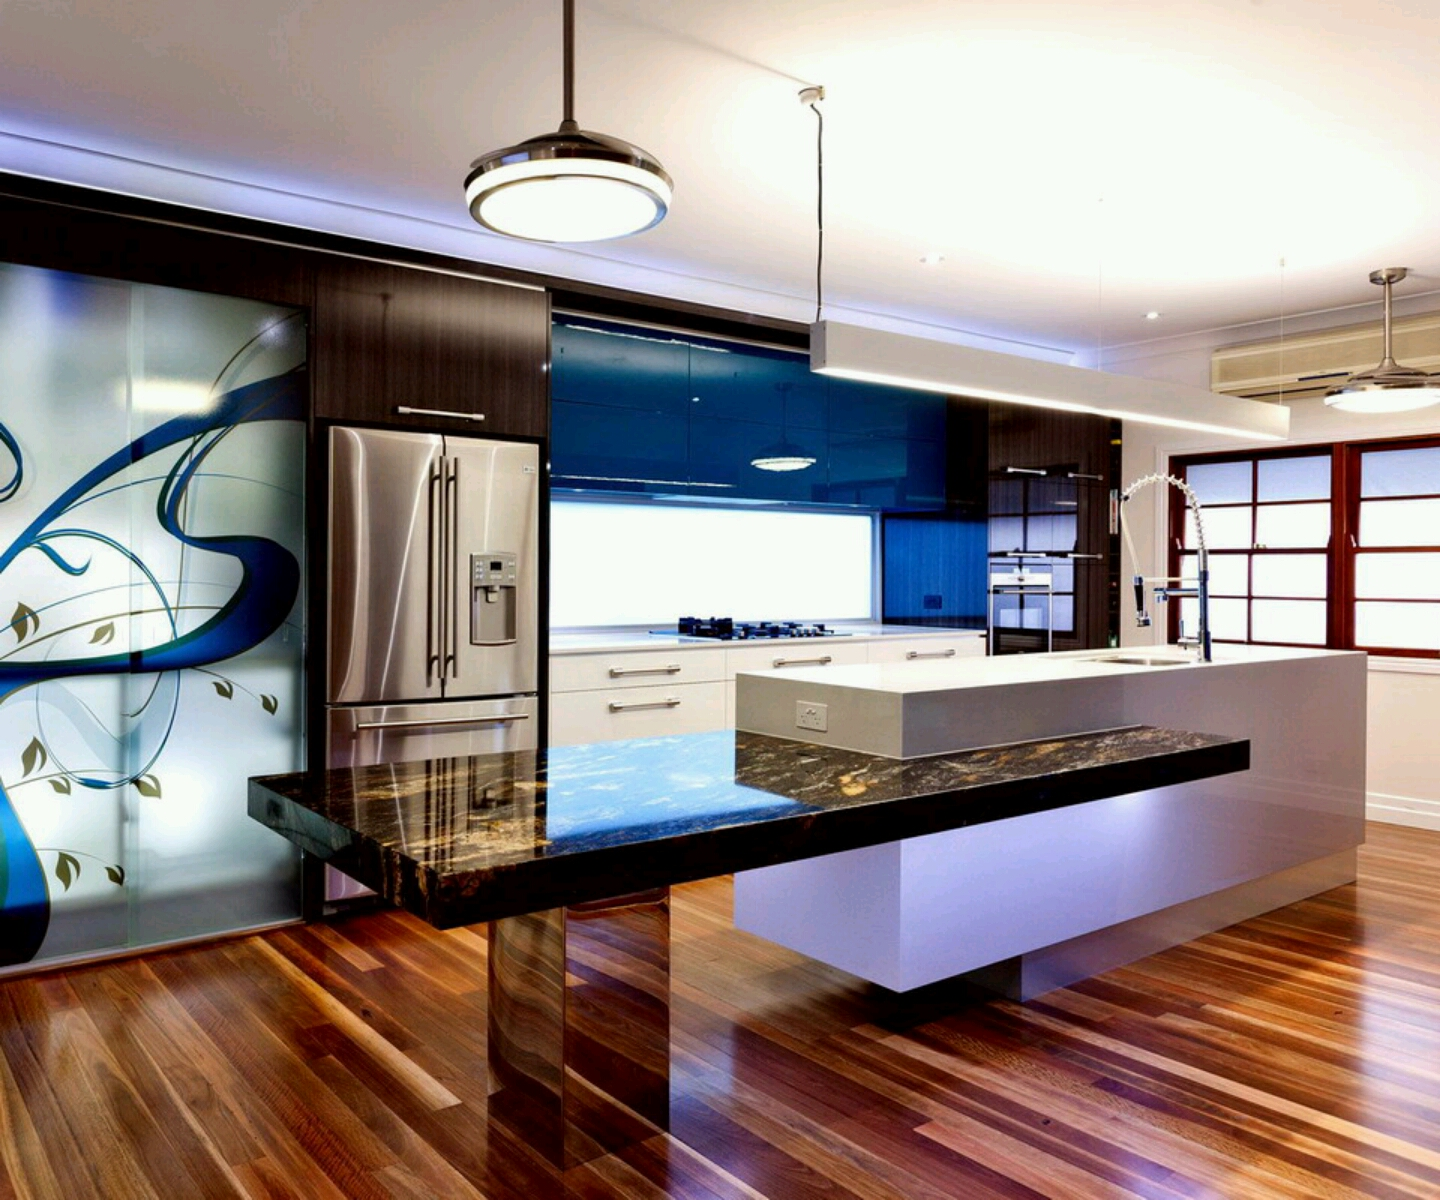 New home designs latest ultra modern kitchen designs ideas for Modern kitchen design